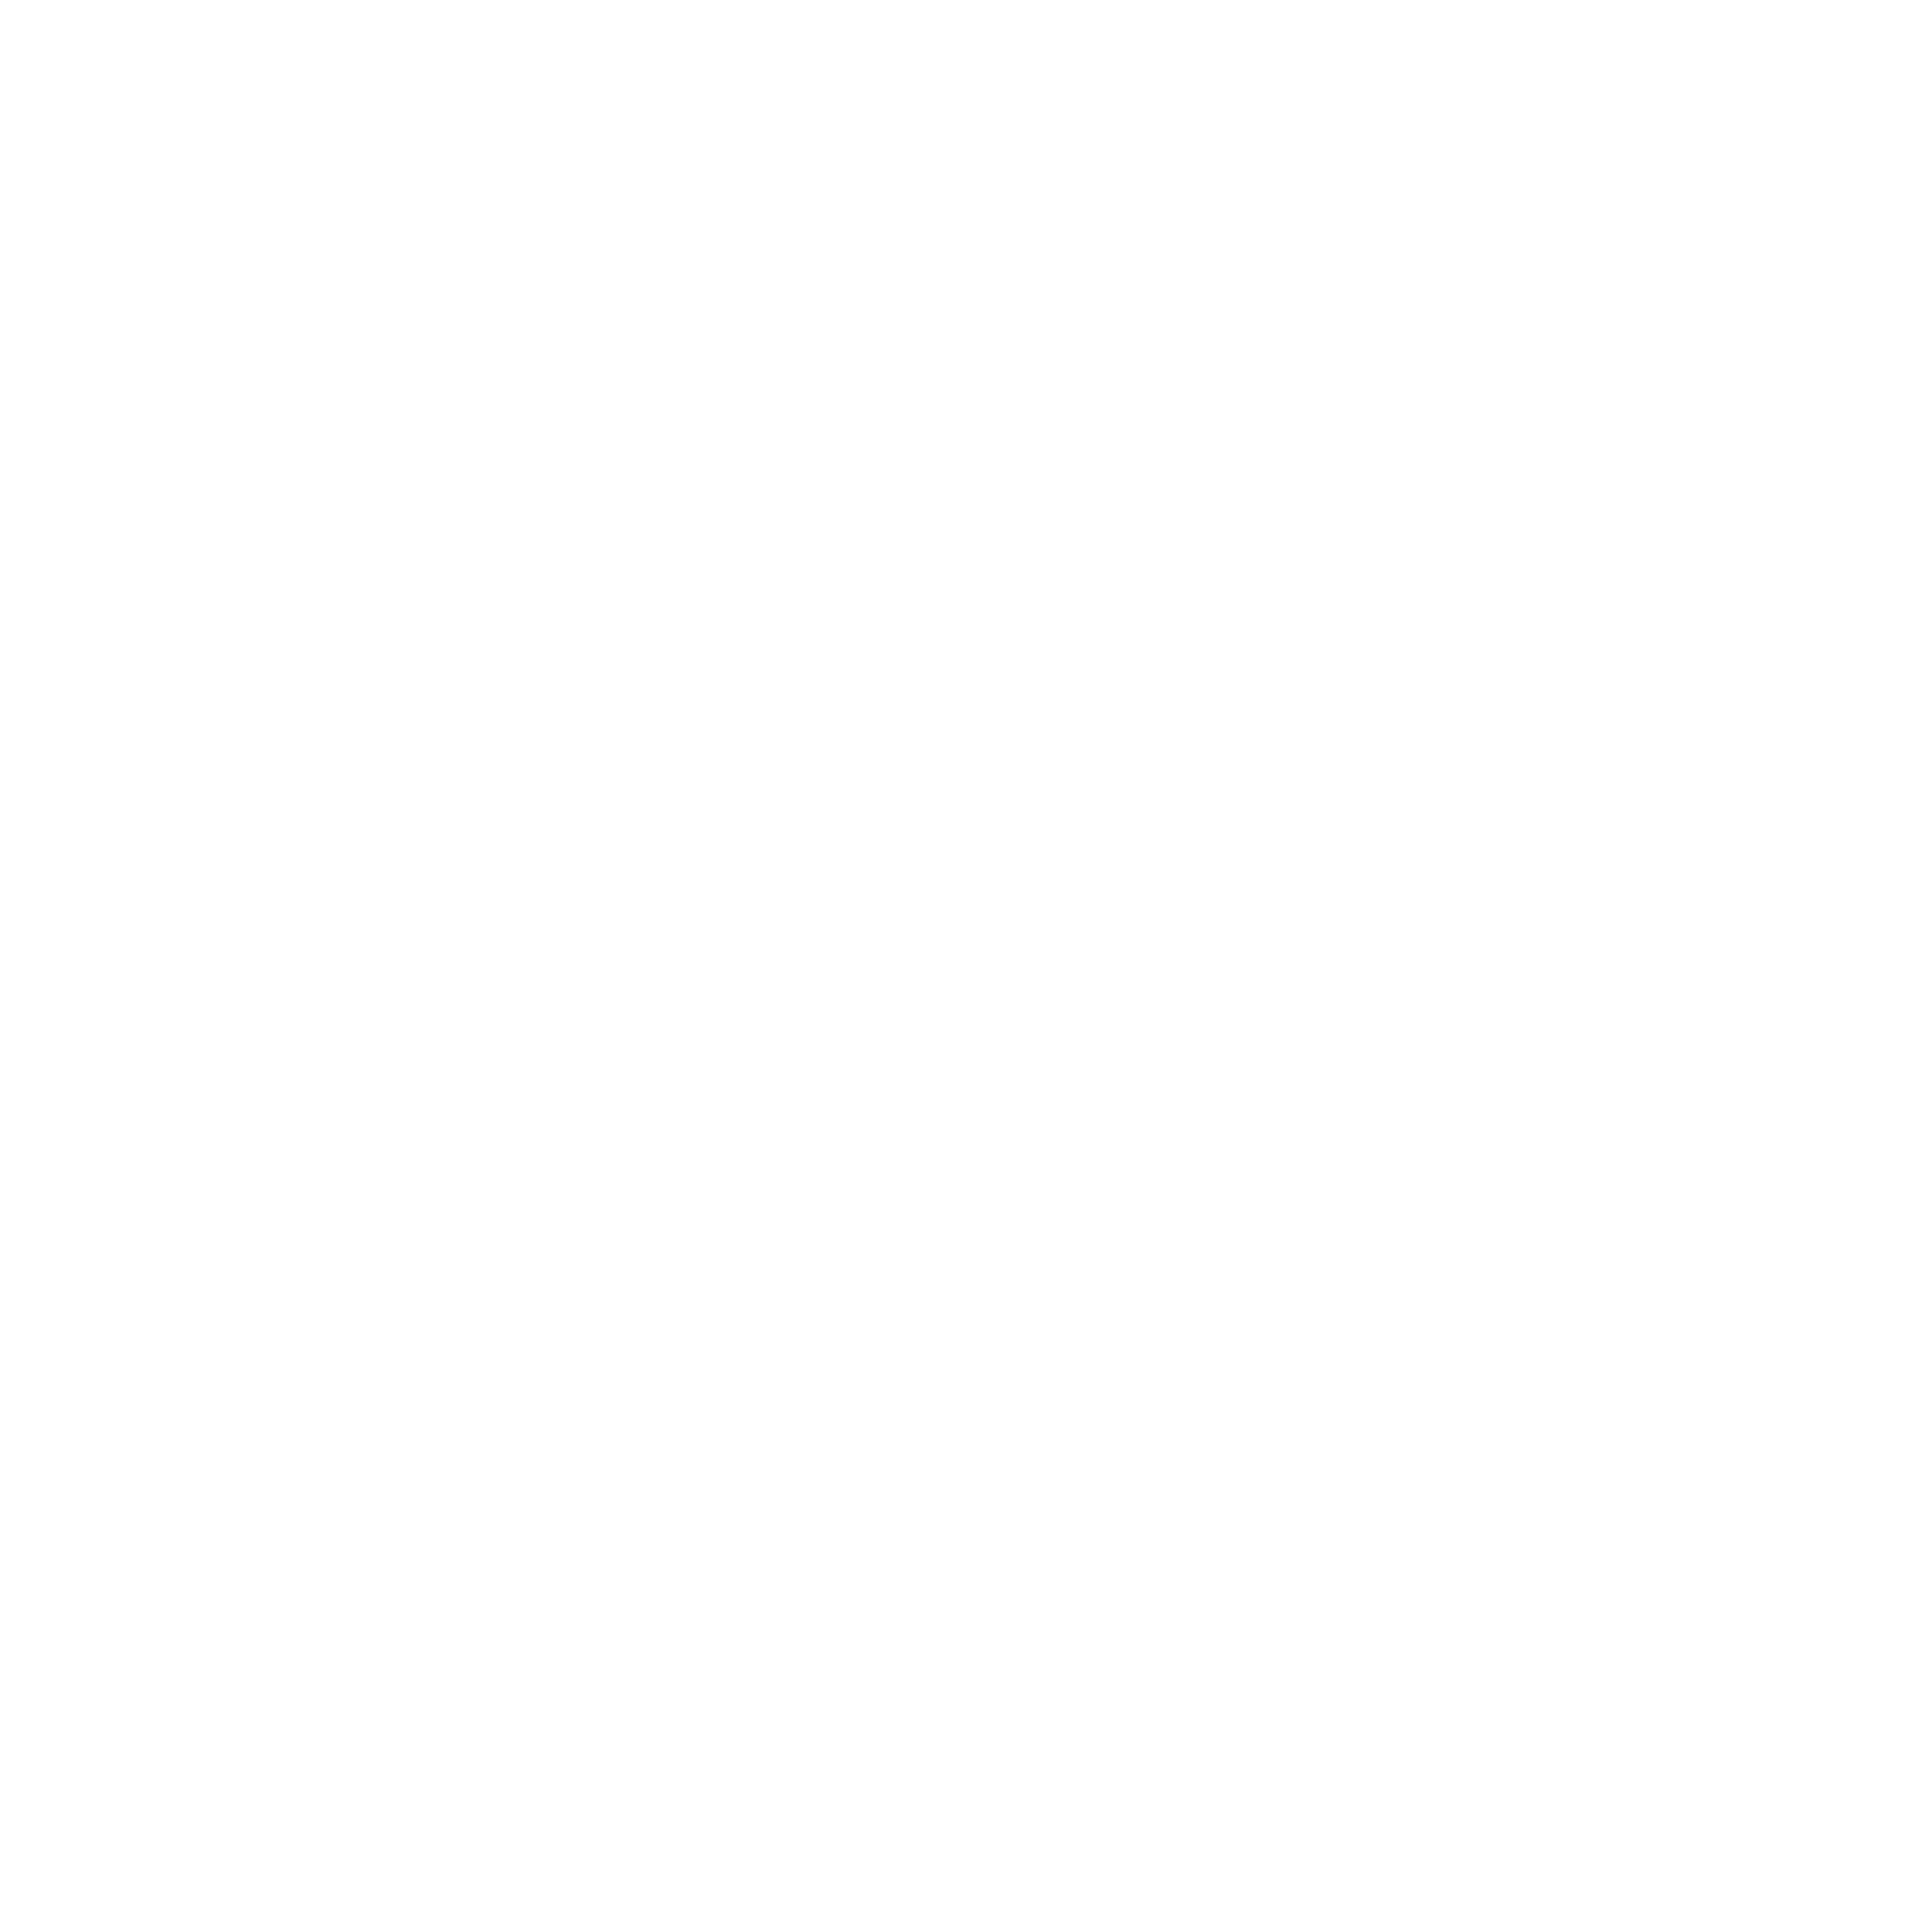 graphic saying san diego, retail, results